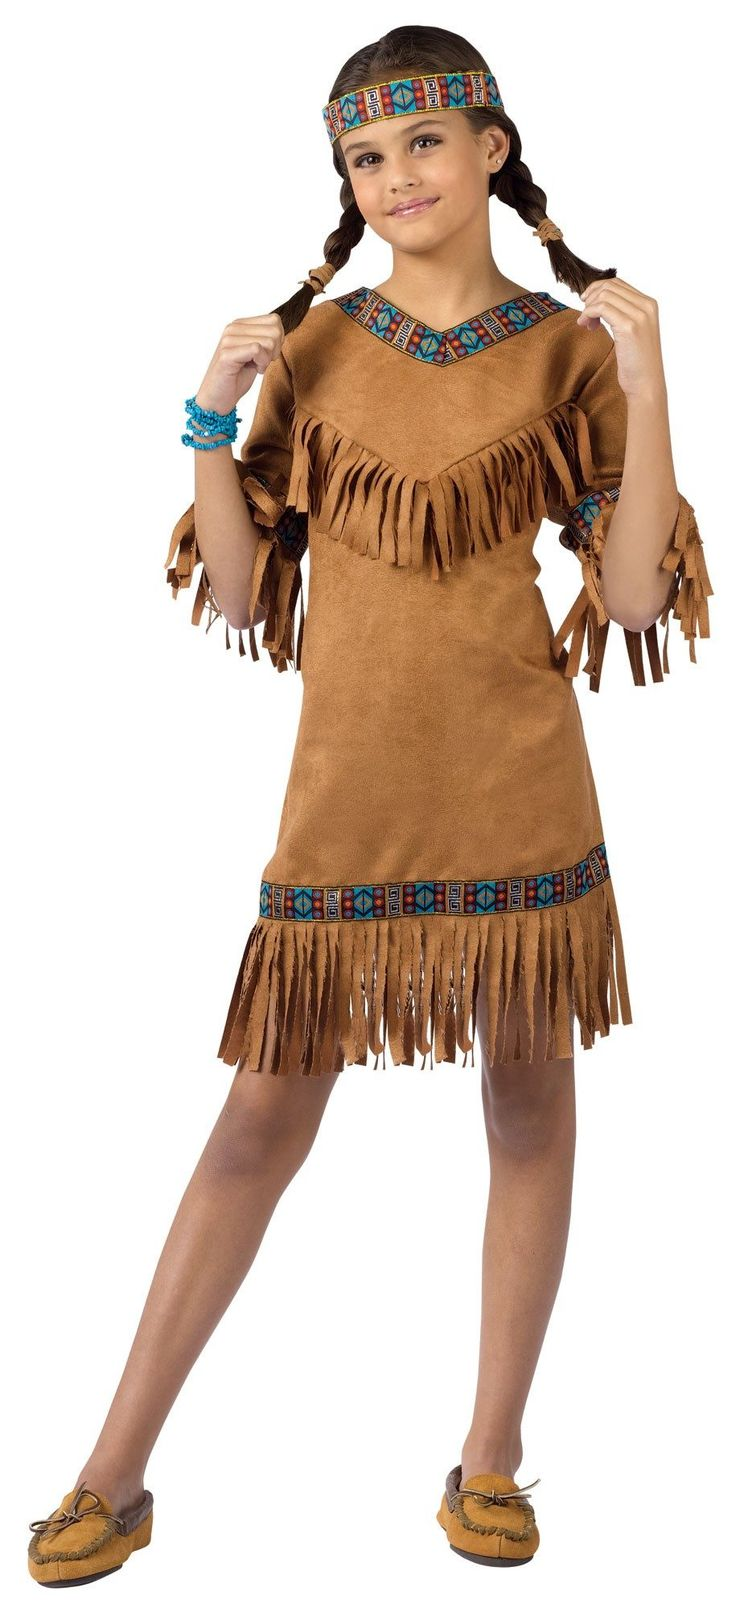 Kids Indian Girl Costume - Mr. Costumes